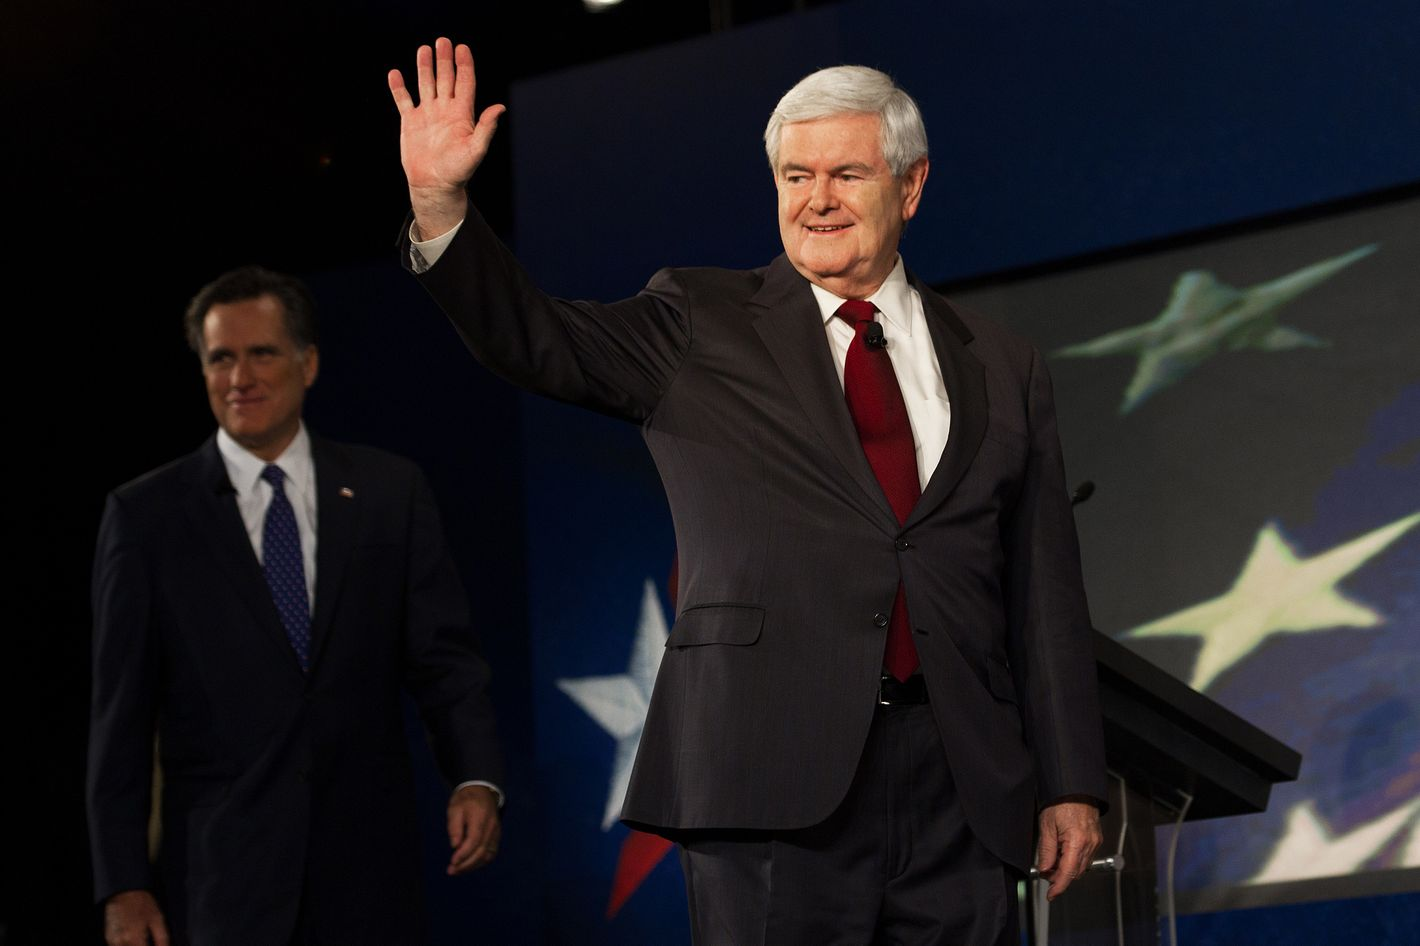 Republician presidential hopeful Newt Gingrich waves, followed by Mitt Romney, as they arrive to participate in the South Carolina Presidential Debate at Wofford College, sponsored by SCGOP, CBS News and the National Journal on November 12, 2011 in Spartanburg, South Carolina.   AFP PHOTO/Paul J. Richards (Photo credit should read PAUL J. RICHARDS/AFP/Getty Images)